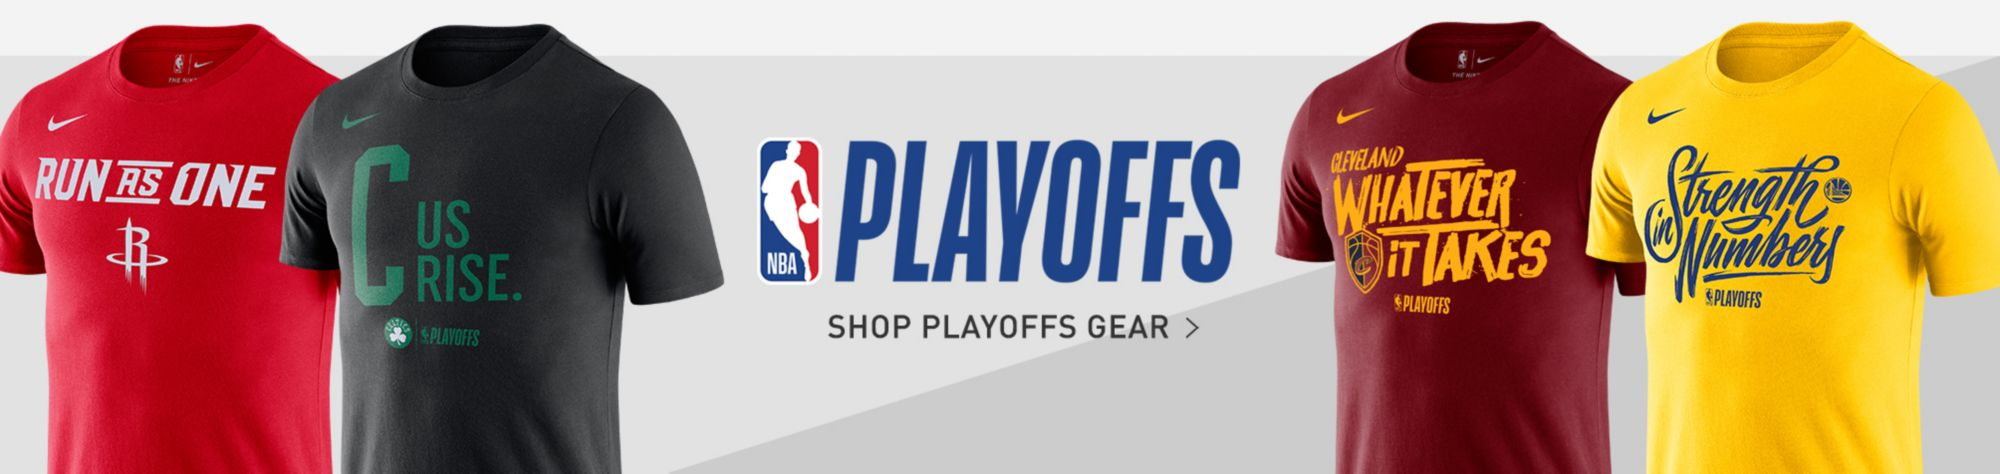 2018 NBA Playoff Gear